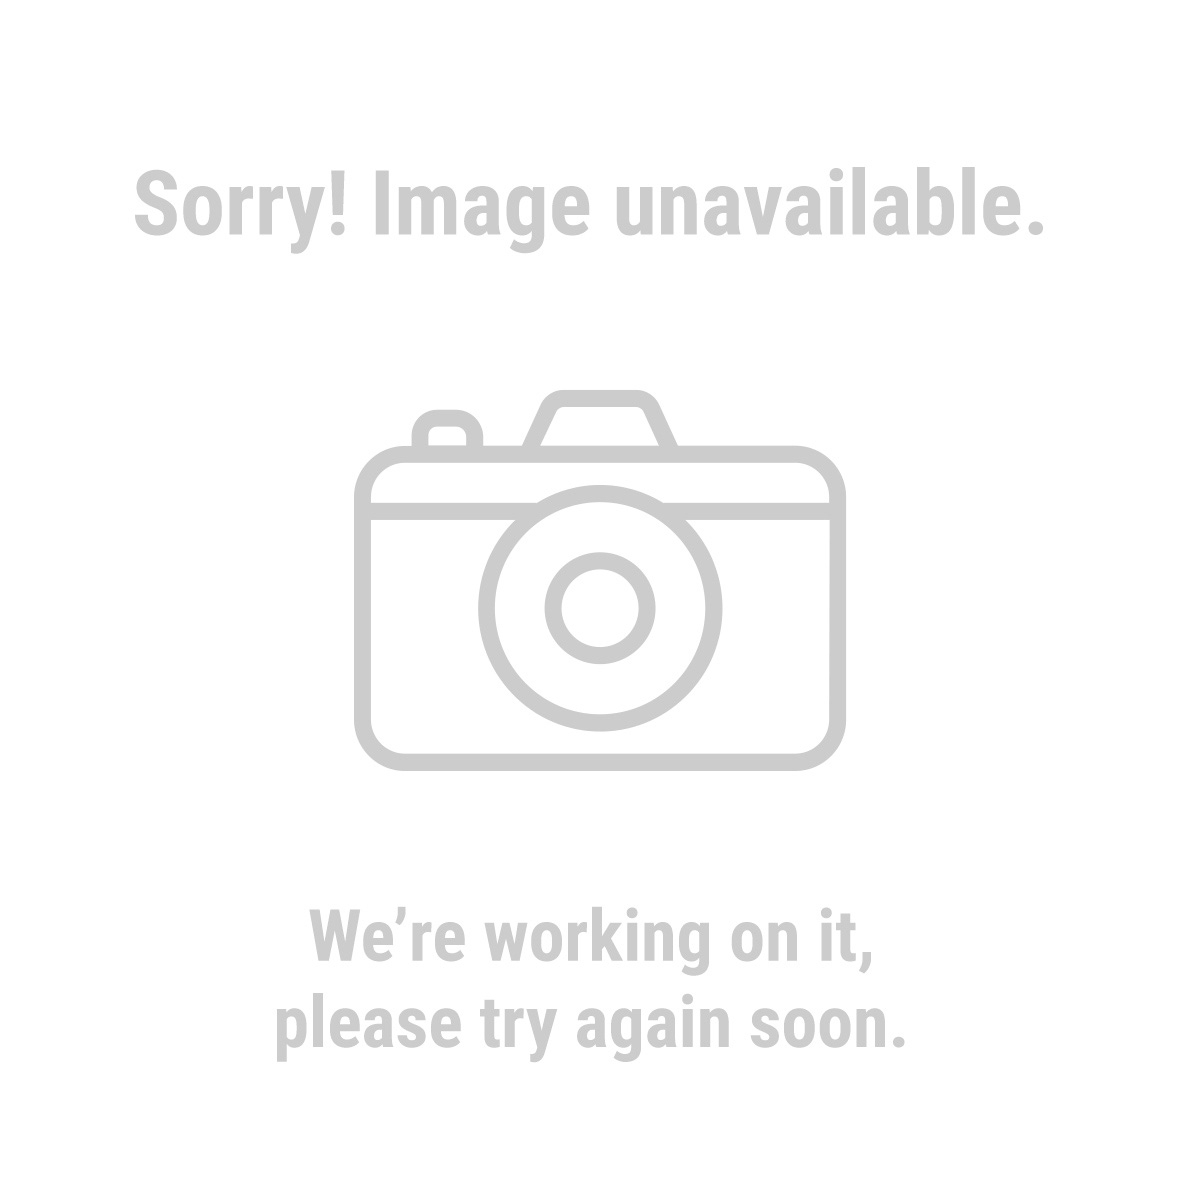 Storehouse 67622 720 Piece Lock Washer Set